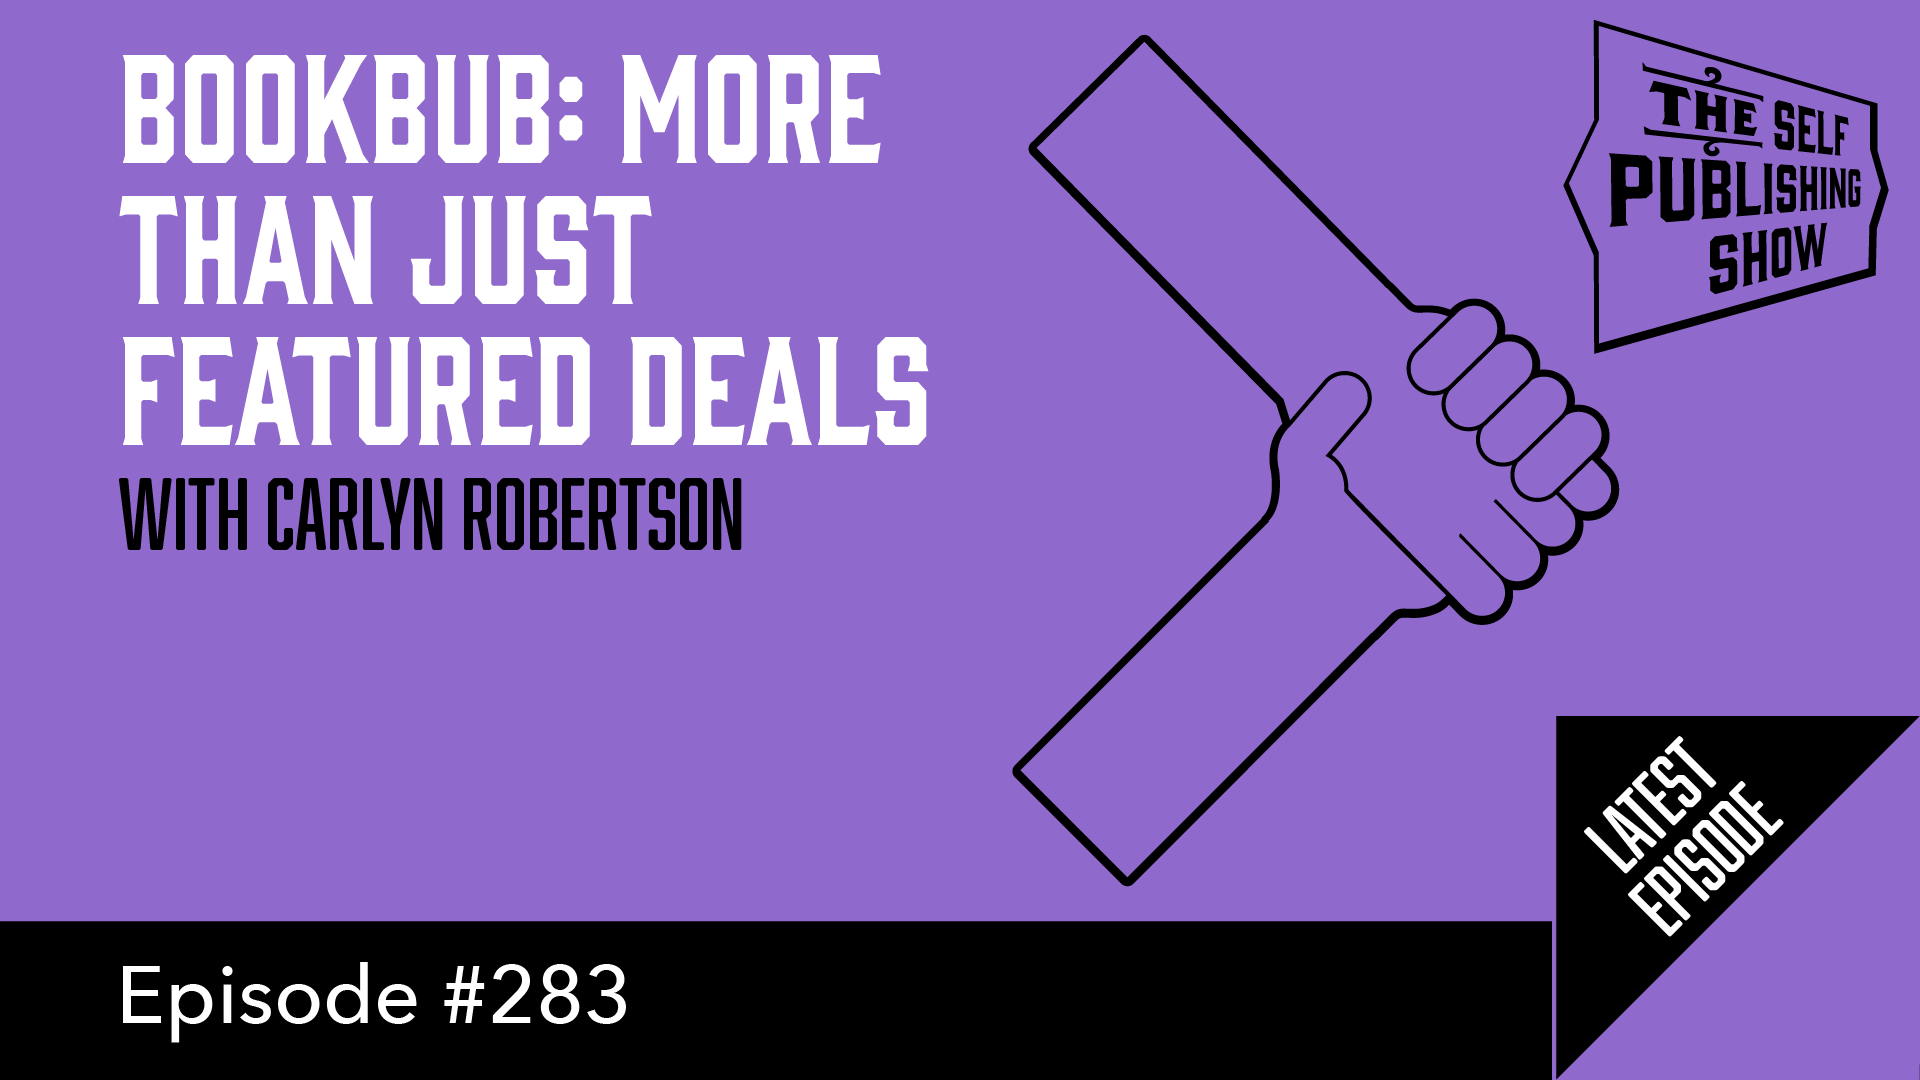 BookBub: More Than Just Featured Deals - with Carlyn Robertson